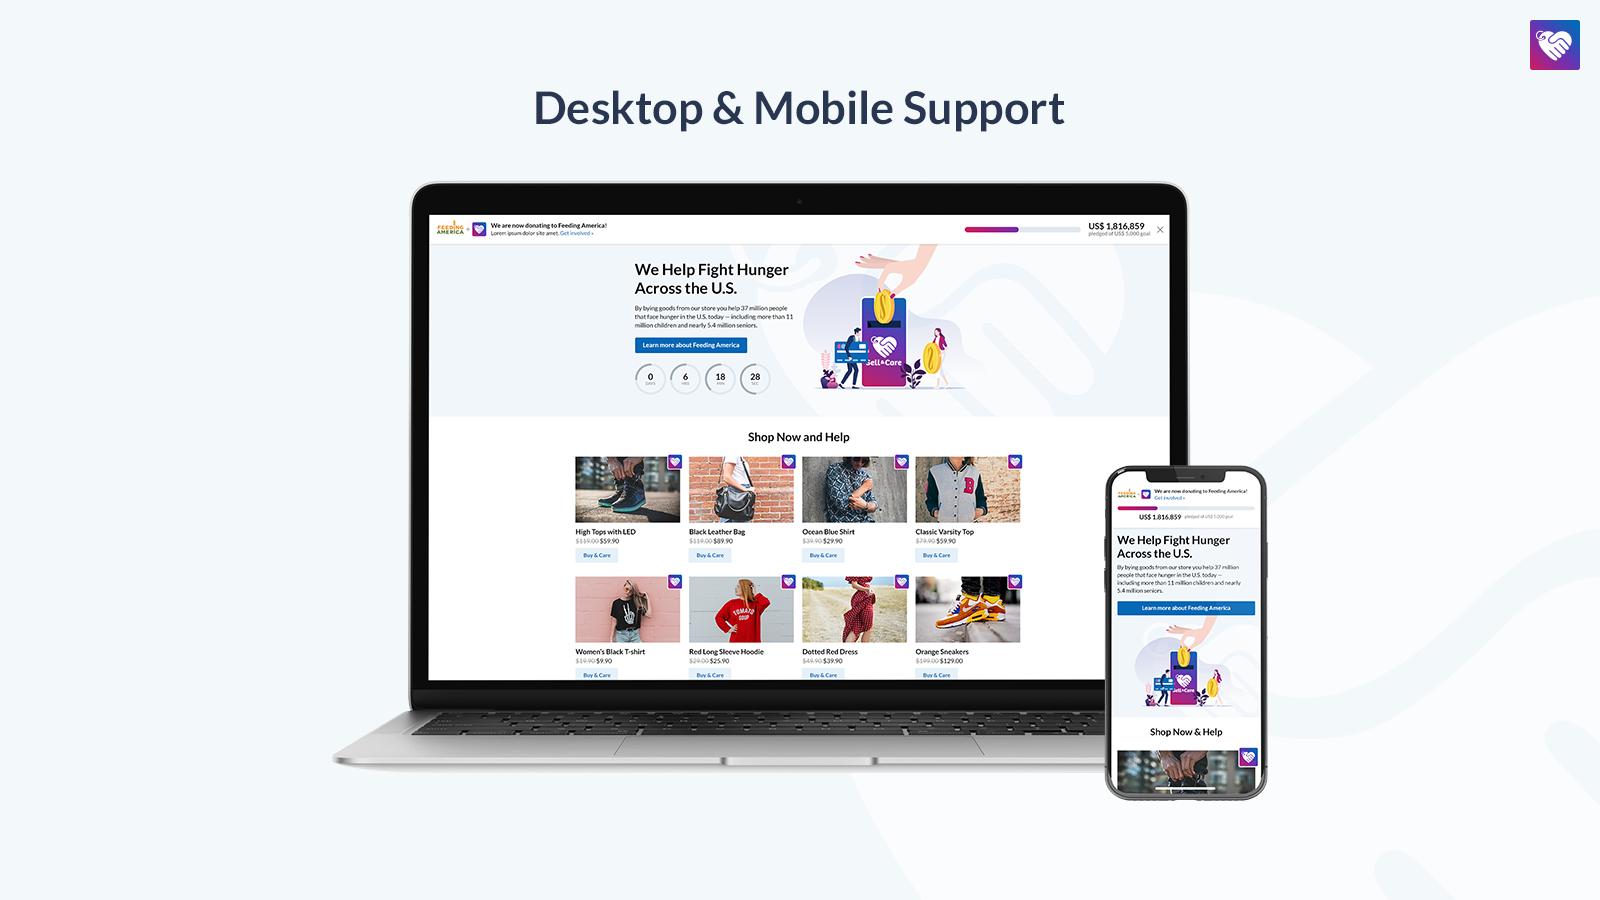 Campaign Page for Desktop and Mobile